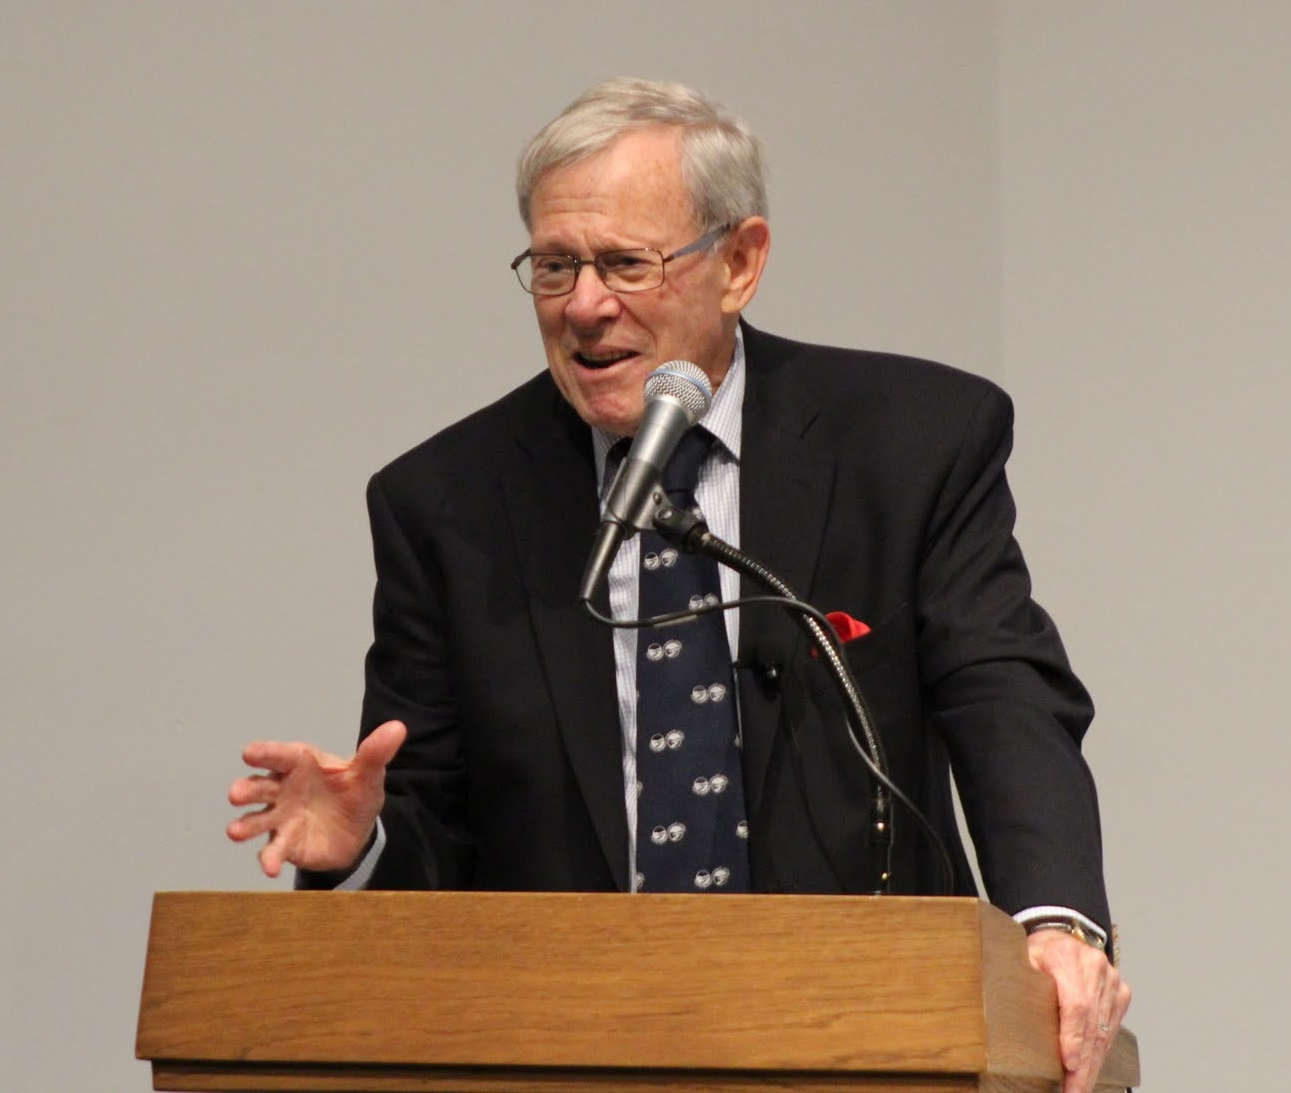 Former Dean Jerry Schubel returns to give the SoMAS 50th Anniversary Keynote